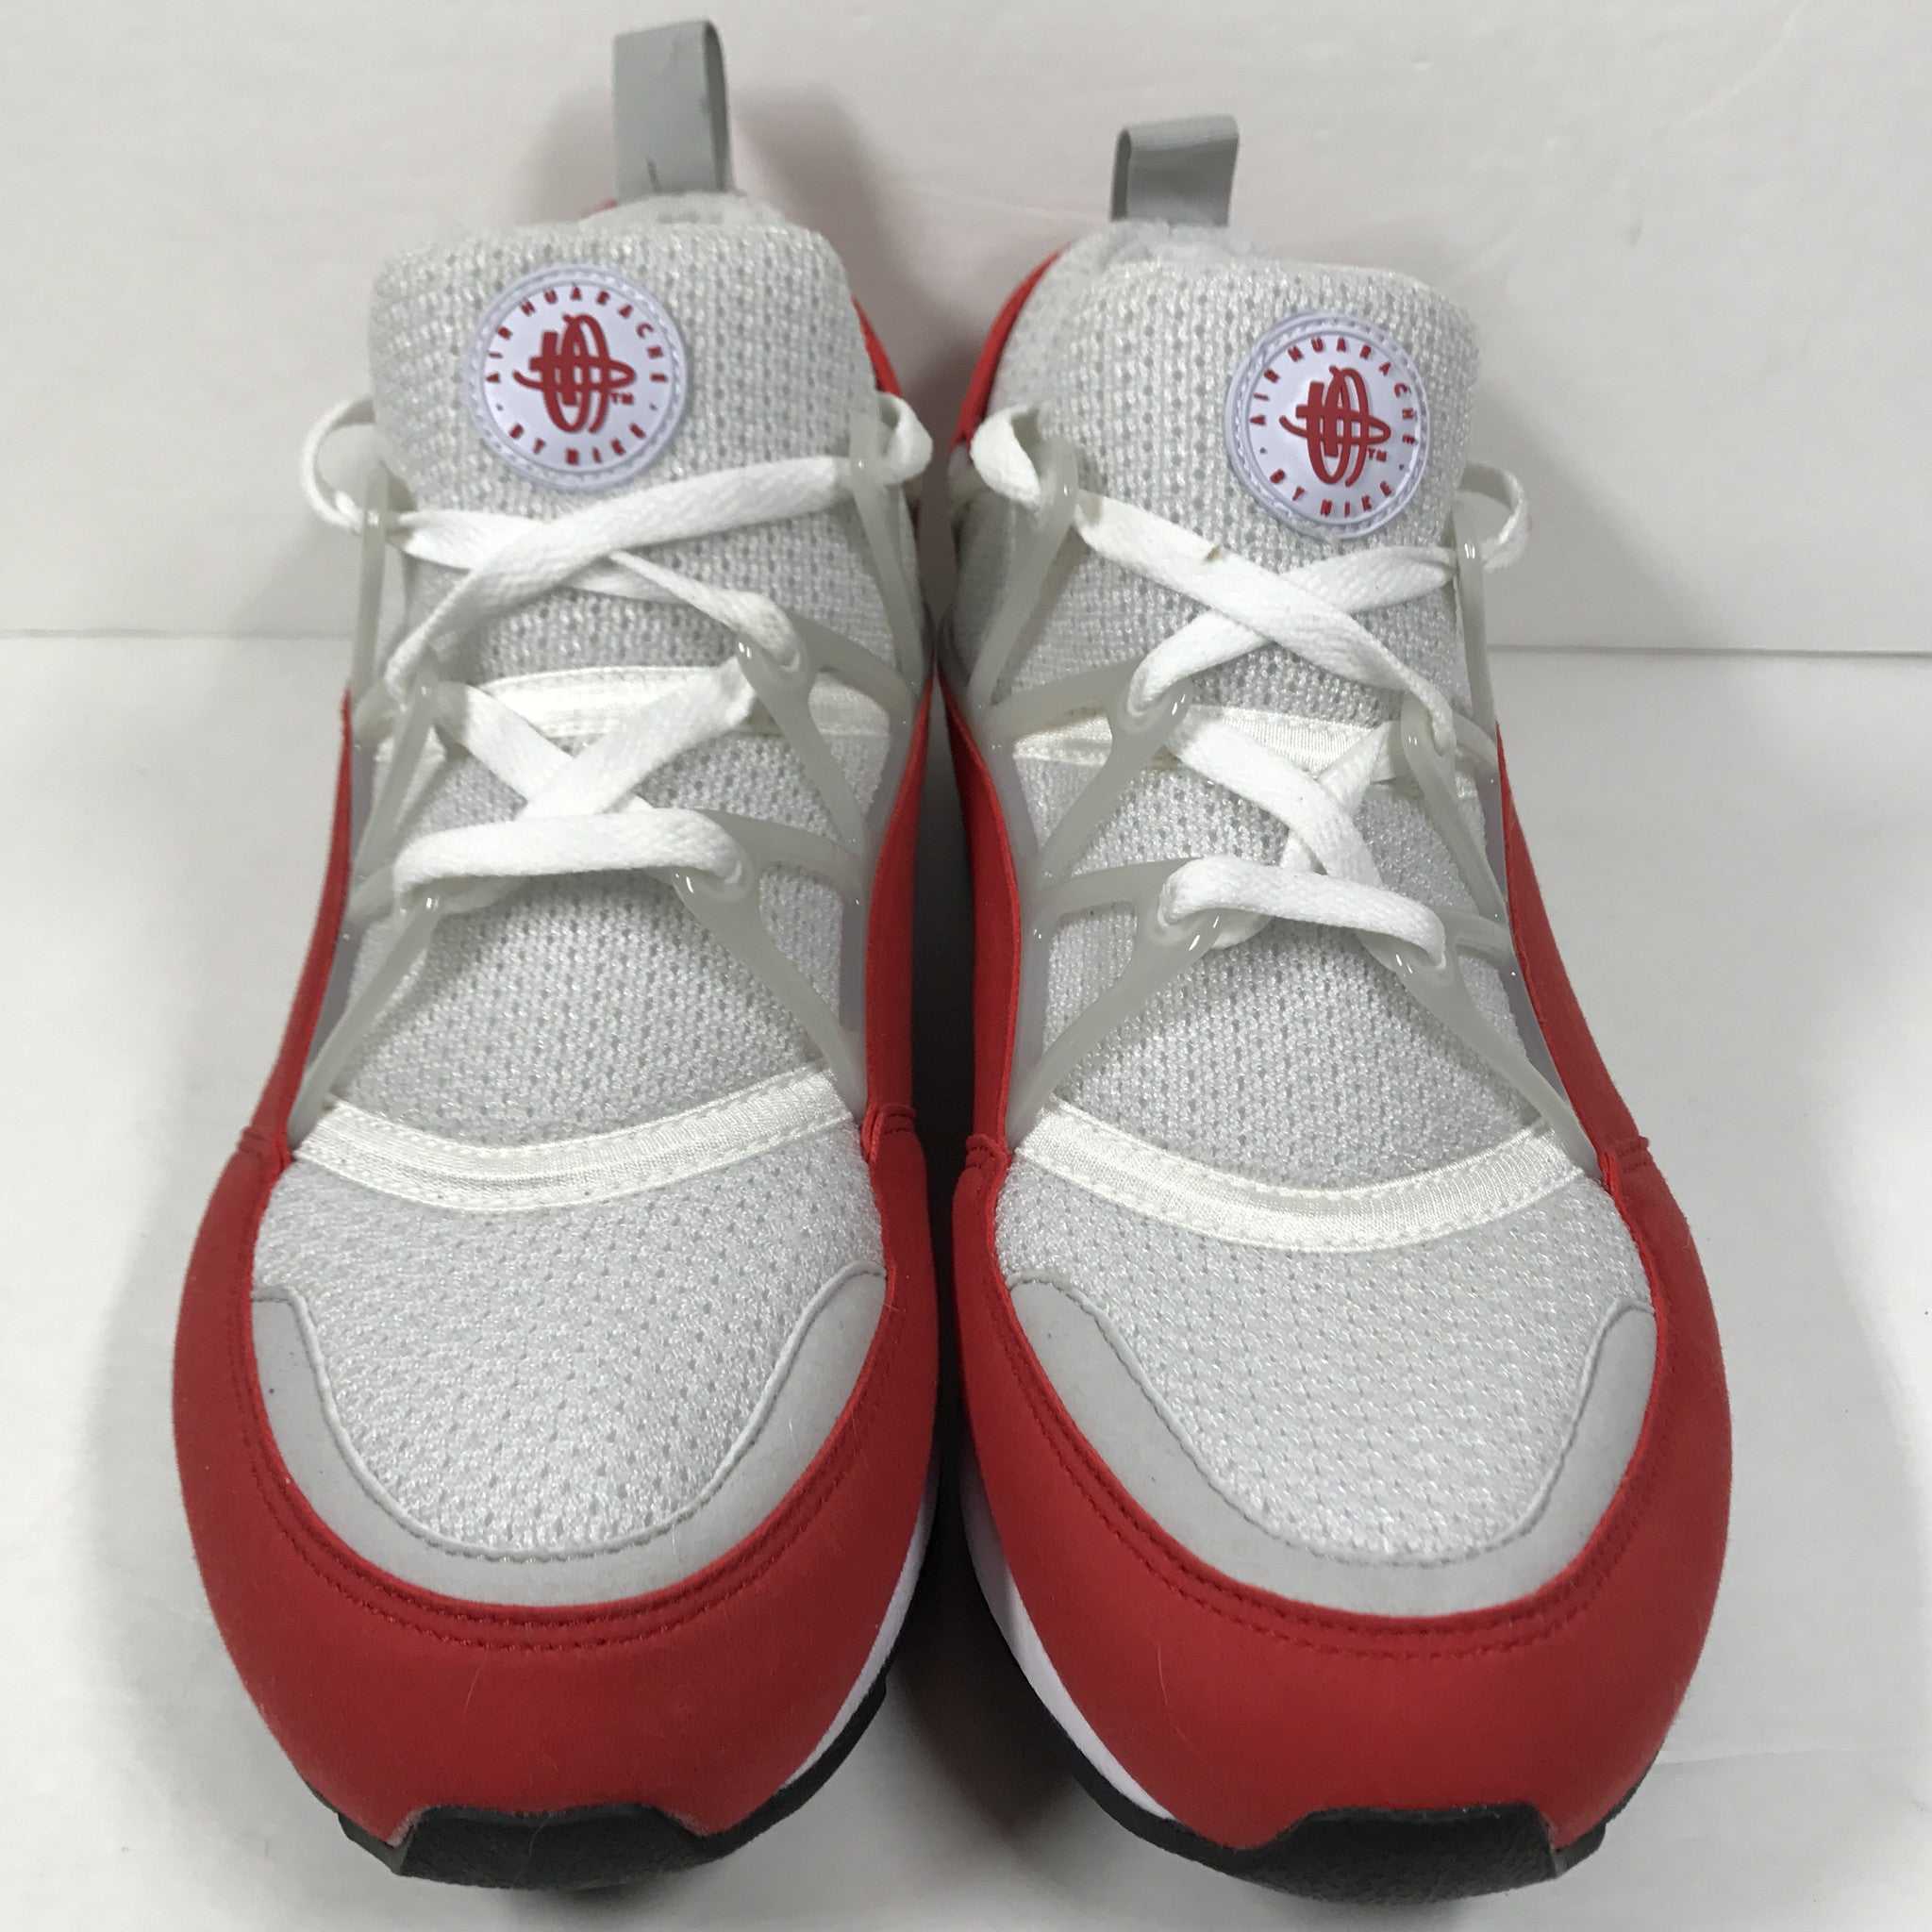 DS Nike Air Huarache Light Red Size 10.5 - DOPEFOOT  - 2